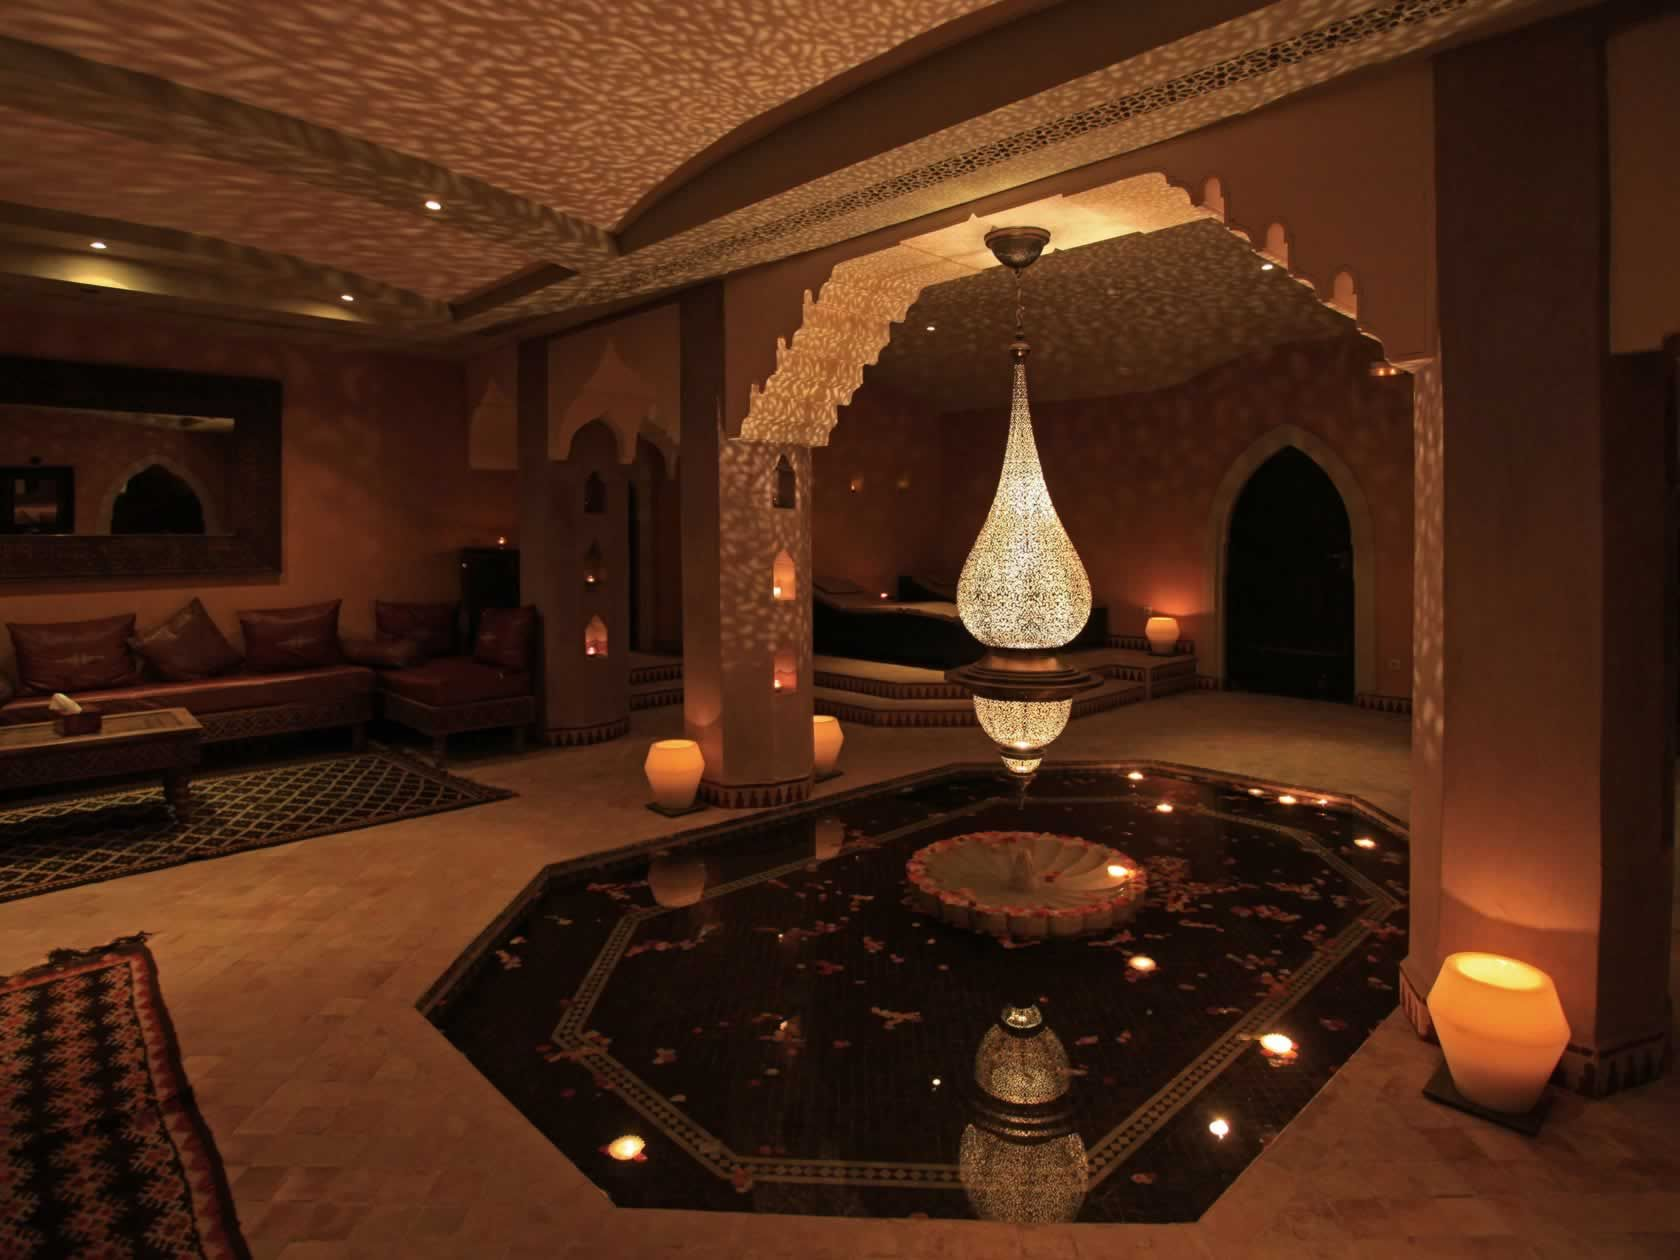 Spa Hotel Marrakech